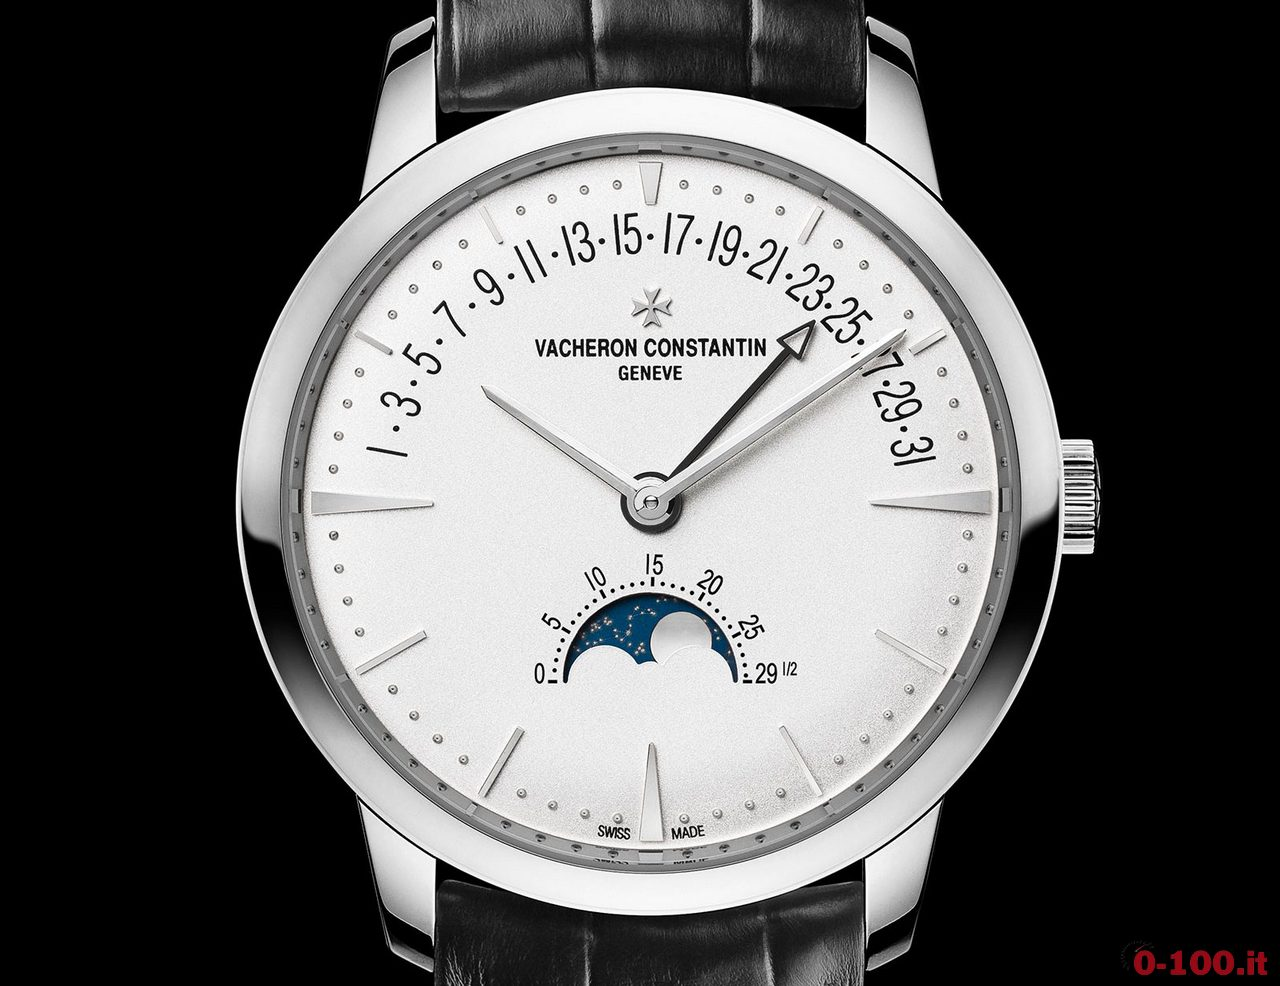 anteprima-sihh-2017-vacheron-constantin-patrimony-moon-phase-and-retrograde-date-prezzo-price_0-1003